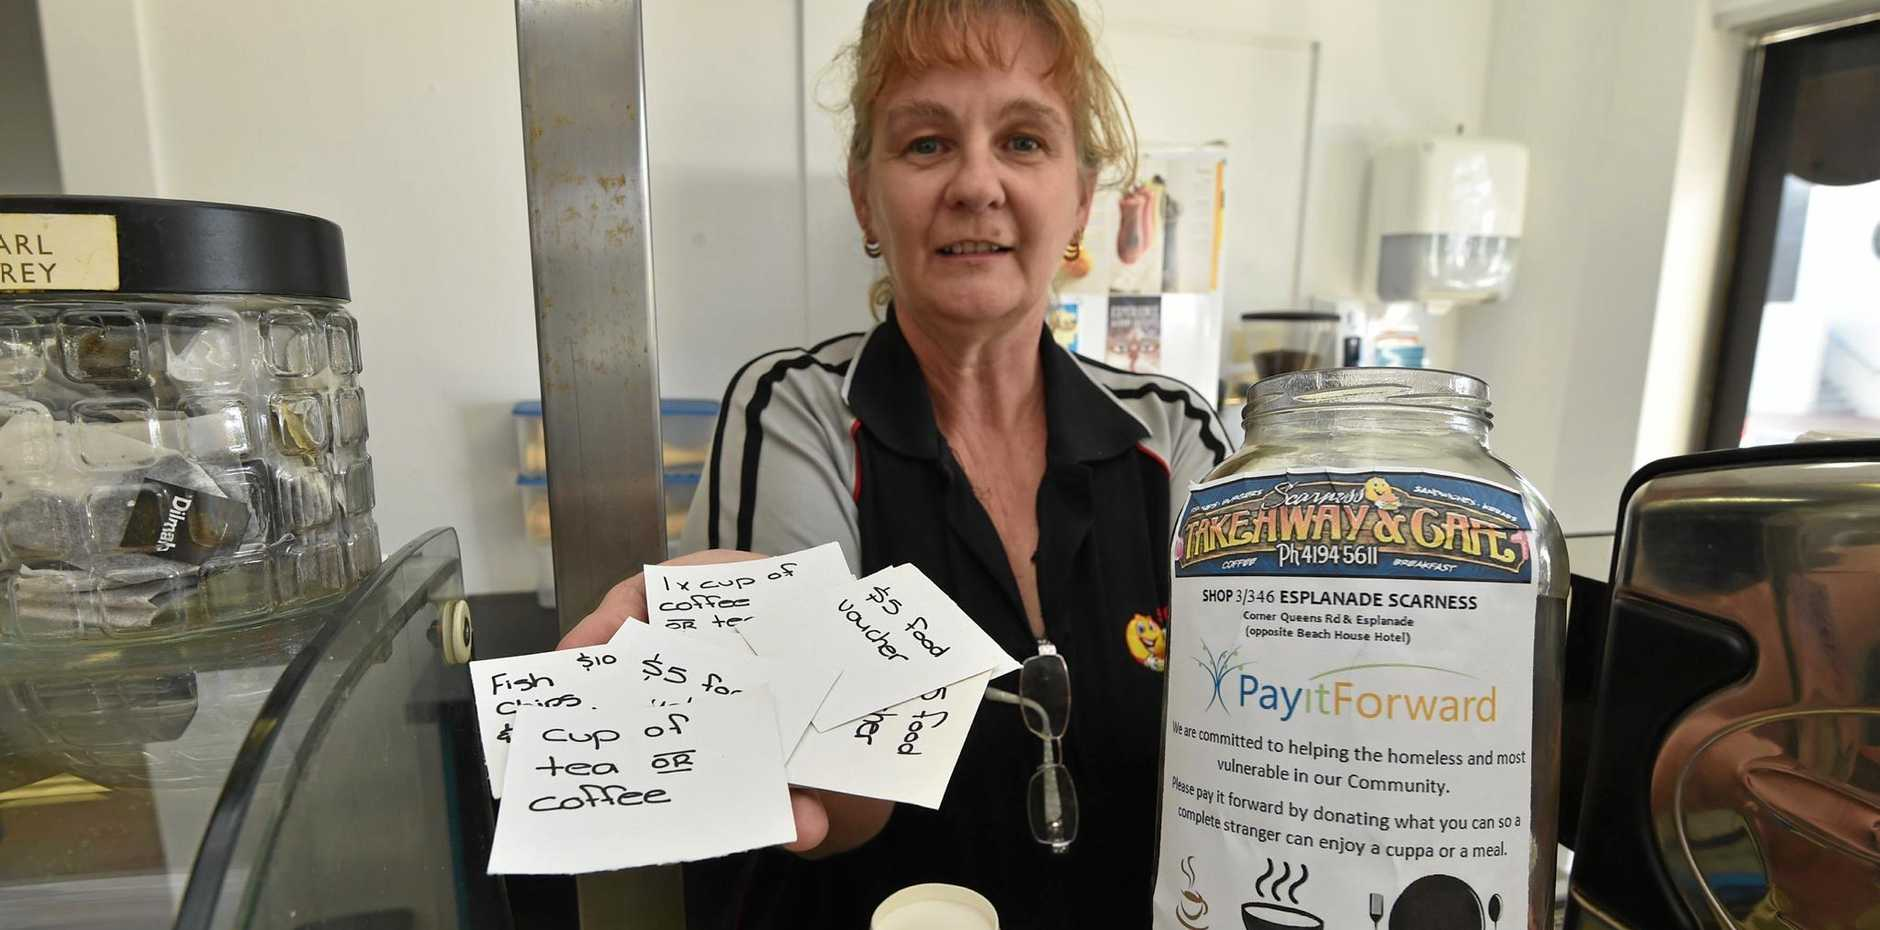 Many businesses are making it easy for their customers to Pay it Forward.